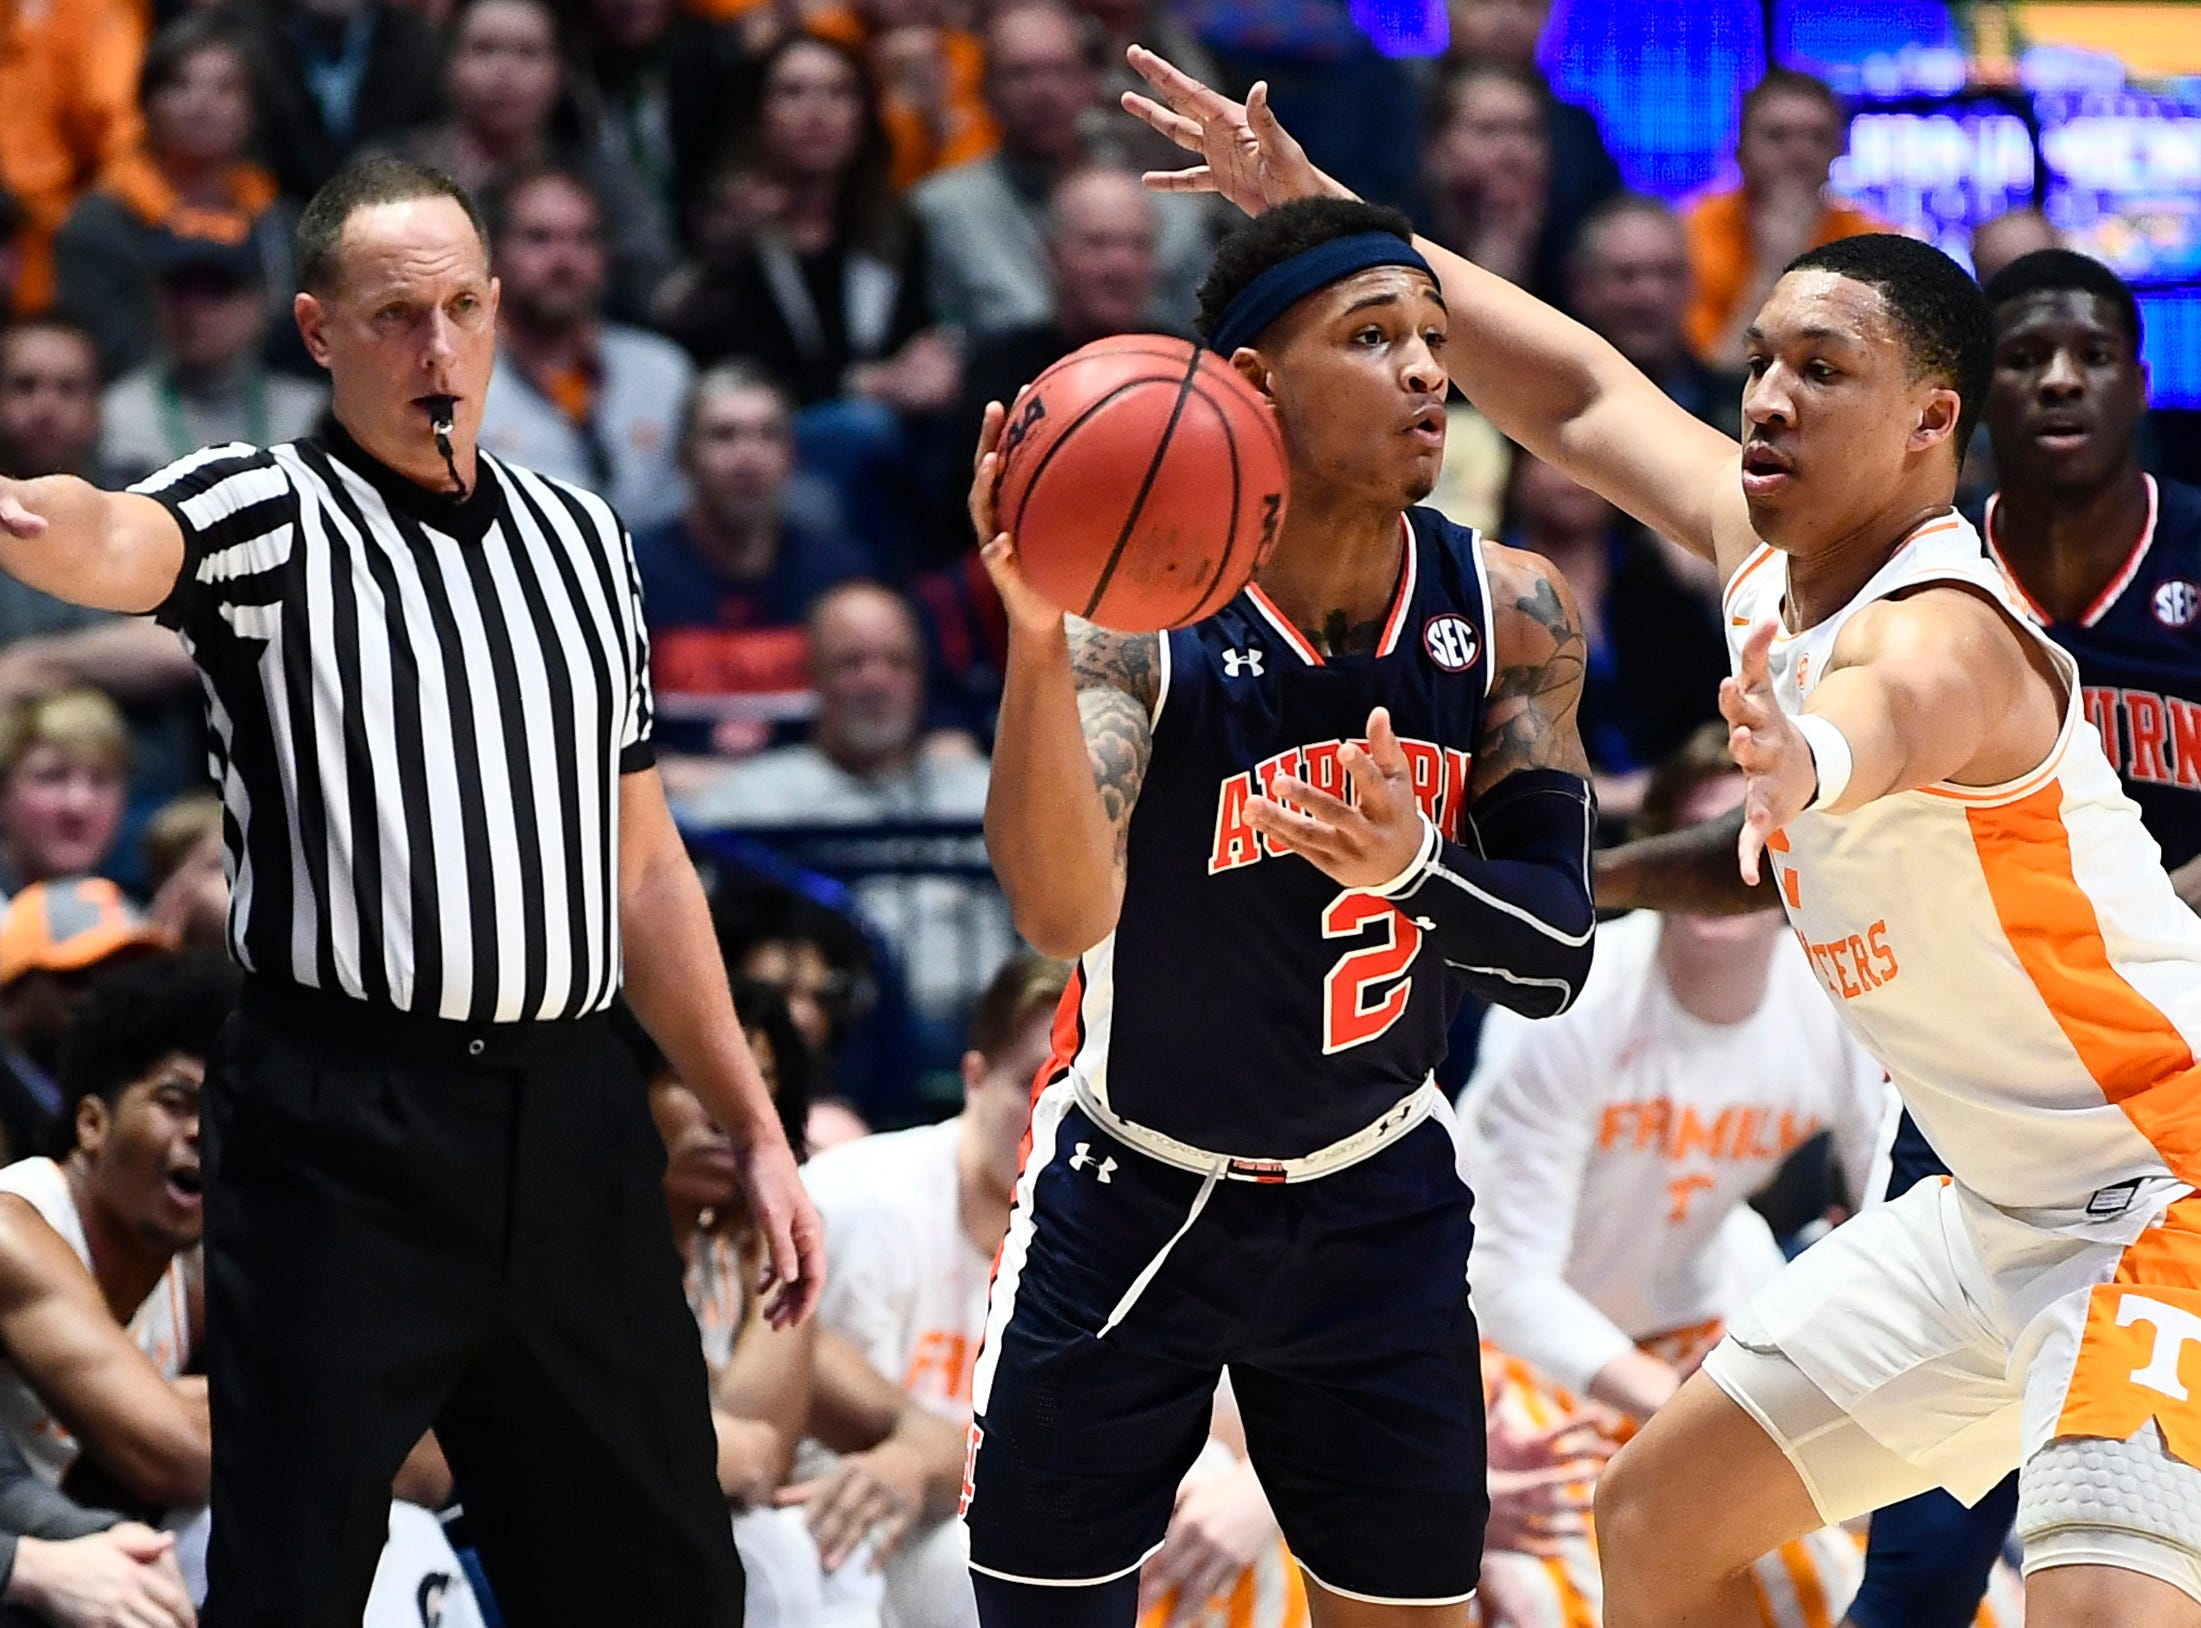 Auburn guard Bryce Brown (2) looks to pass while defended by Tennessee forward Grant Williams (2) during the first half of the SEC Men's Basketball Tournament championship game at Bridgestone Arena in Nashville, Tenn., Sunday, March 17, 2019.